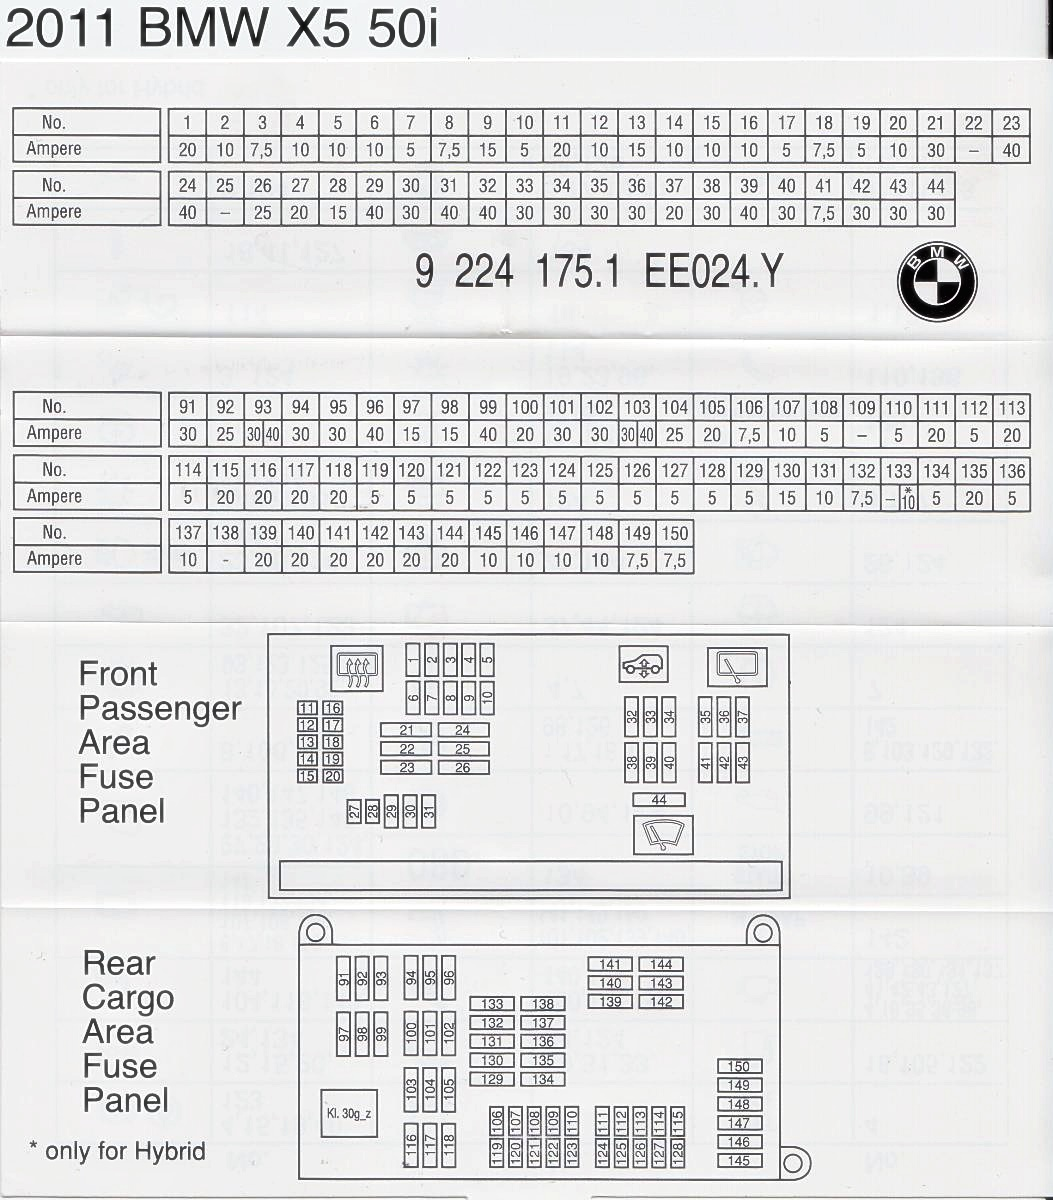 X5_T70_FusePanels bmw x5 fuse box diagram 2014 wiring diagrams instruction 2014 dodge dart fuse box diagram at aneh.co